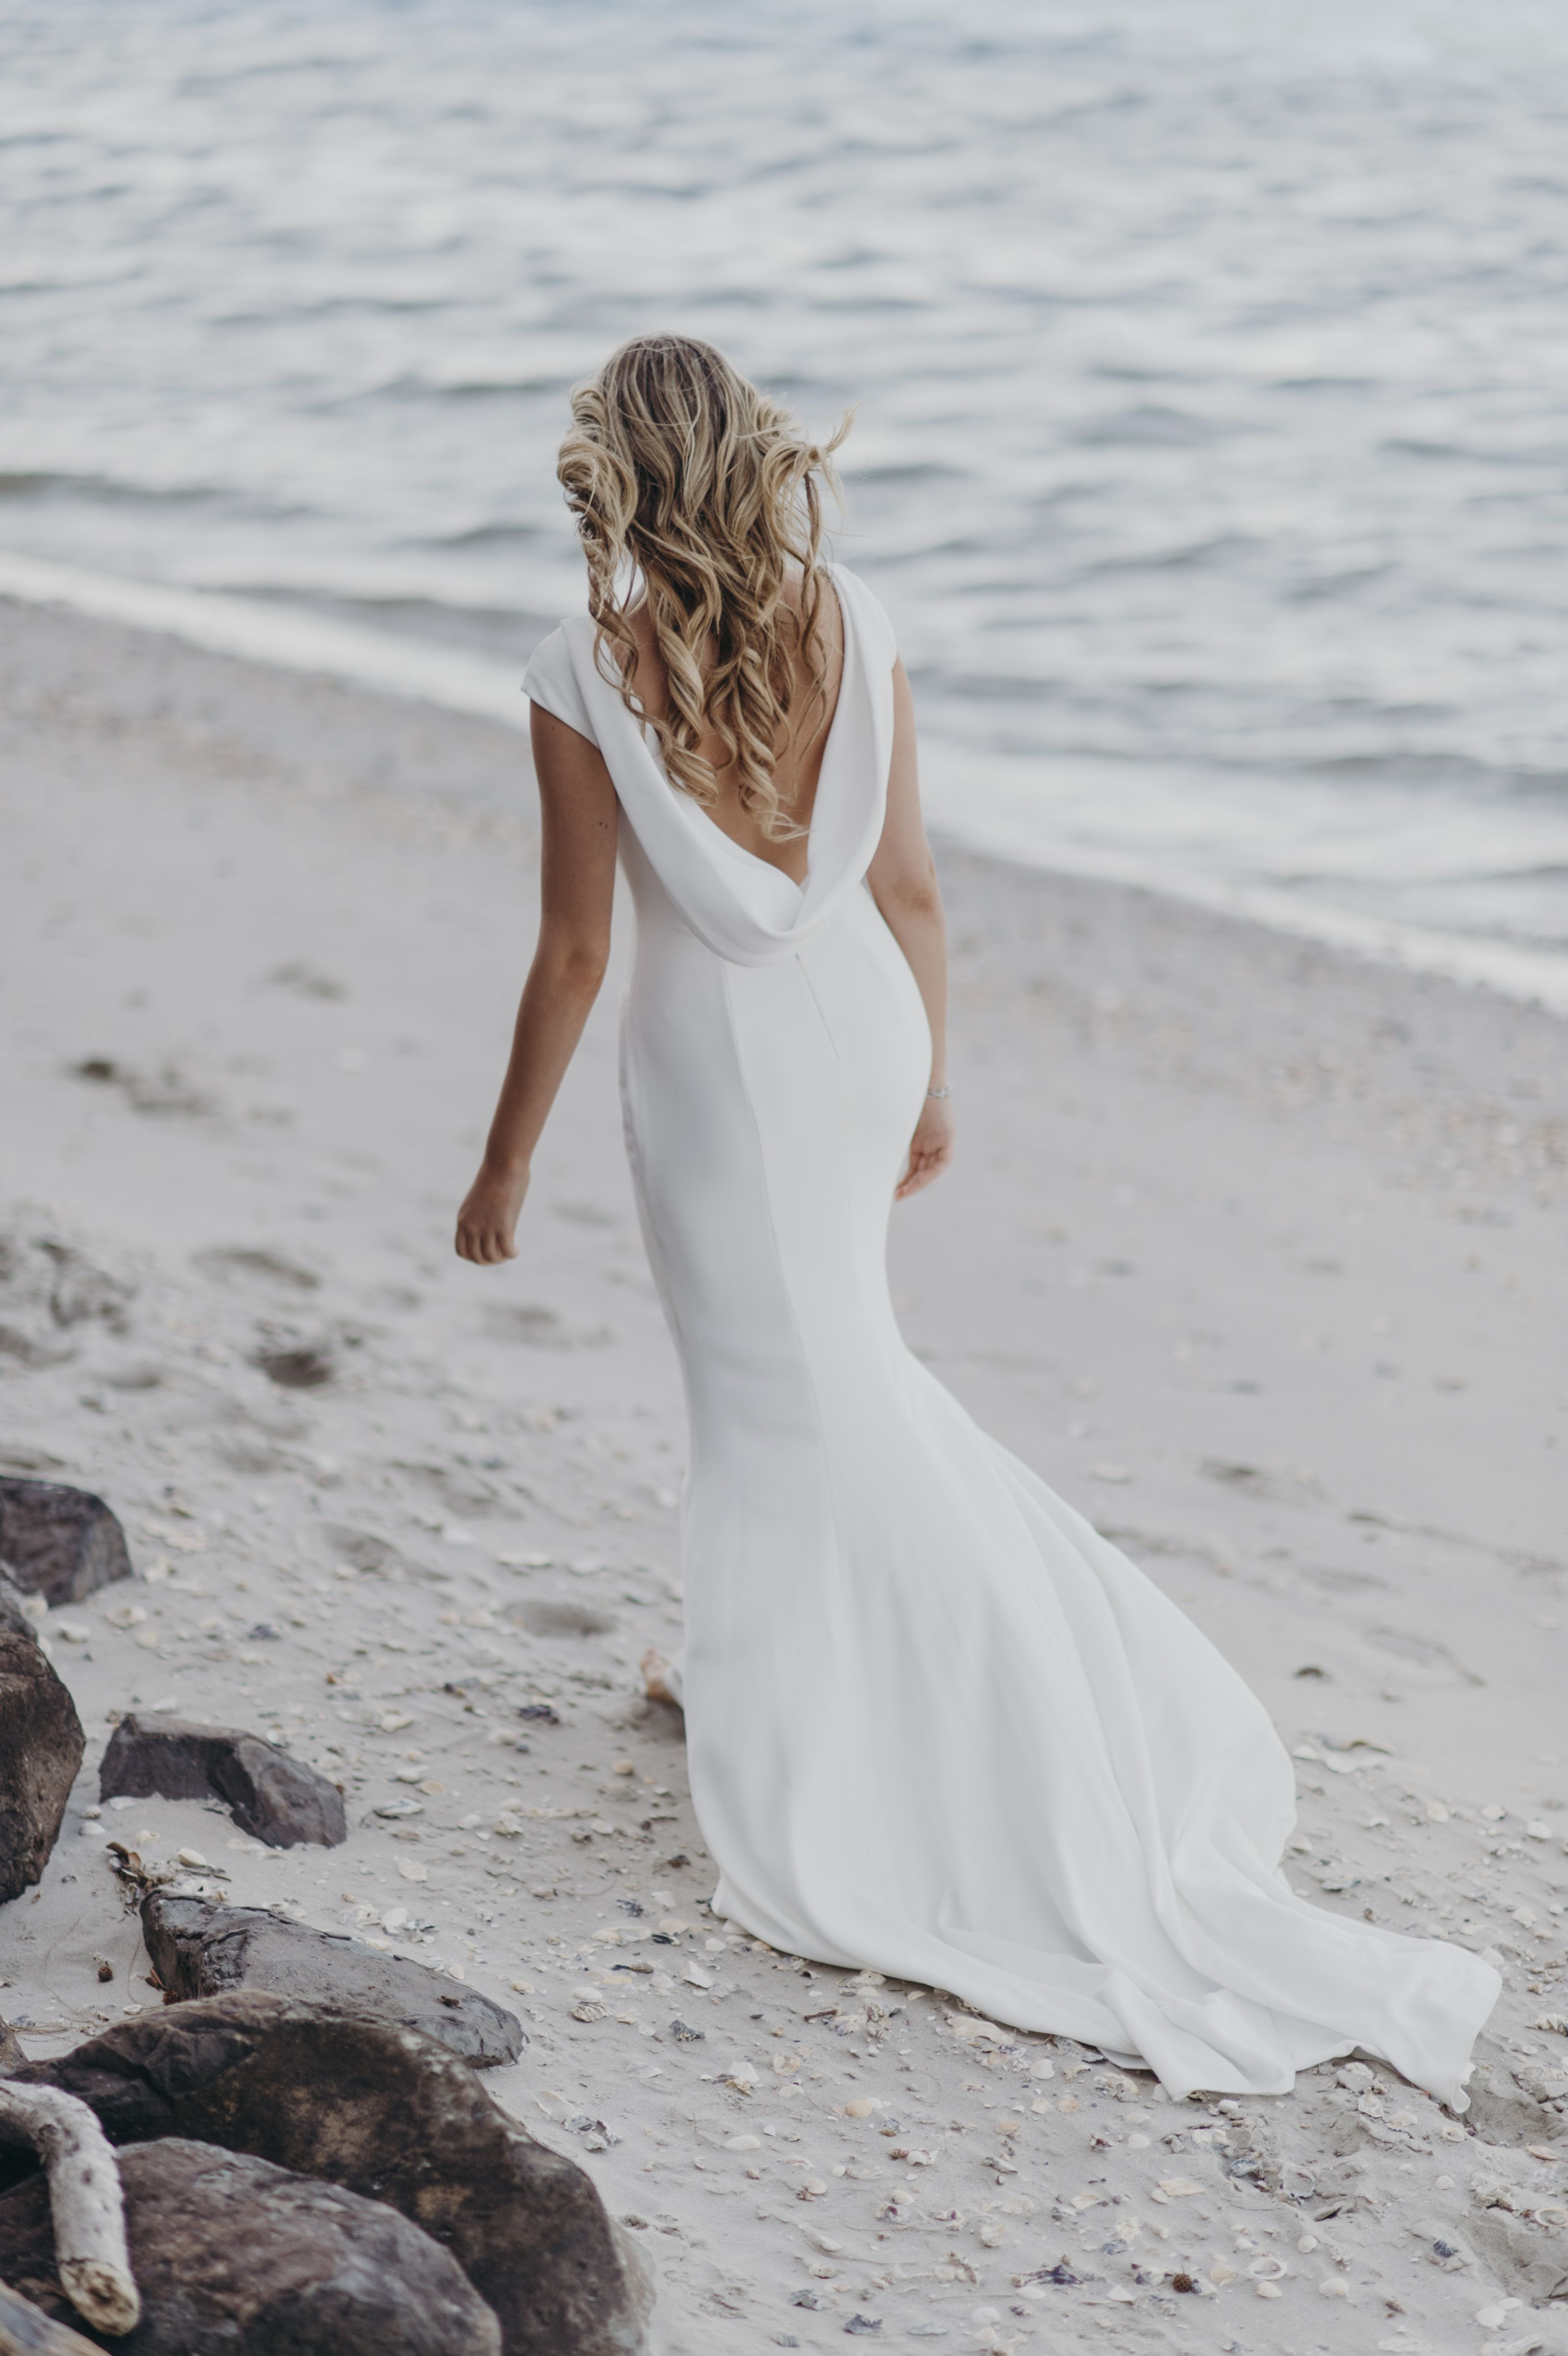 Sample For Sale Size 14 990 Empirebridal Love Bride Bridesmaid Bridetribe Enga Wedding Dress Boutiques Affordable Wedding Dresses Wedding Dresses